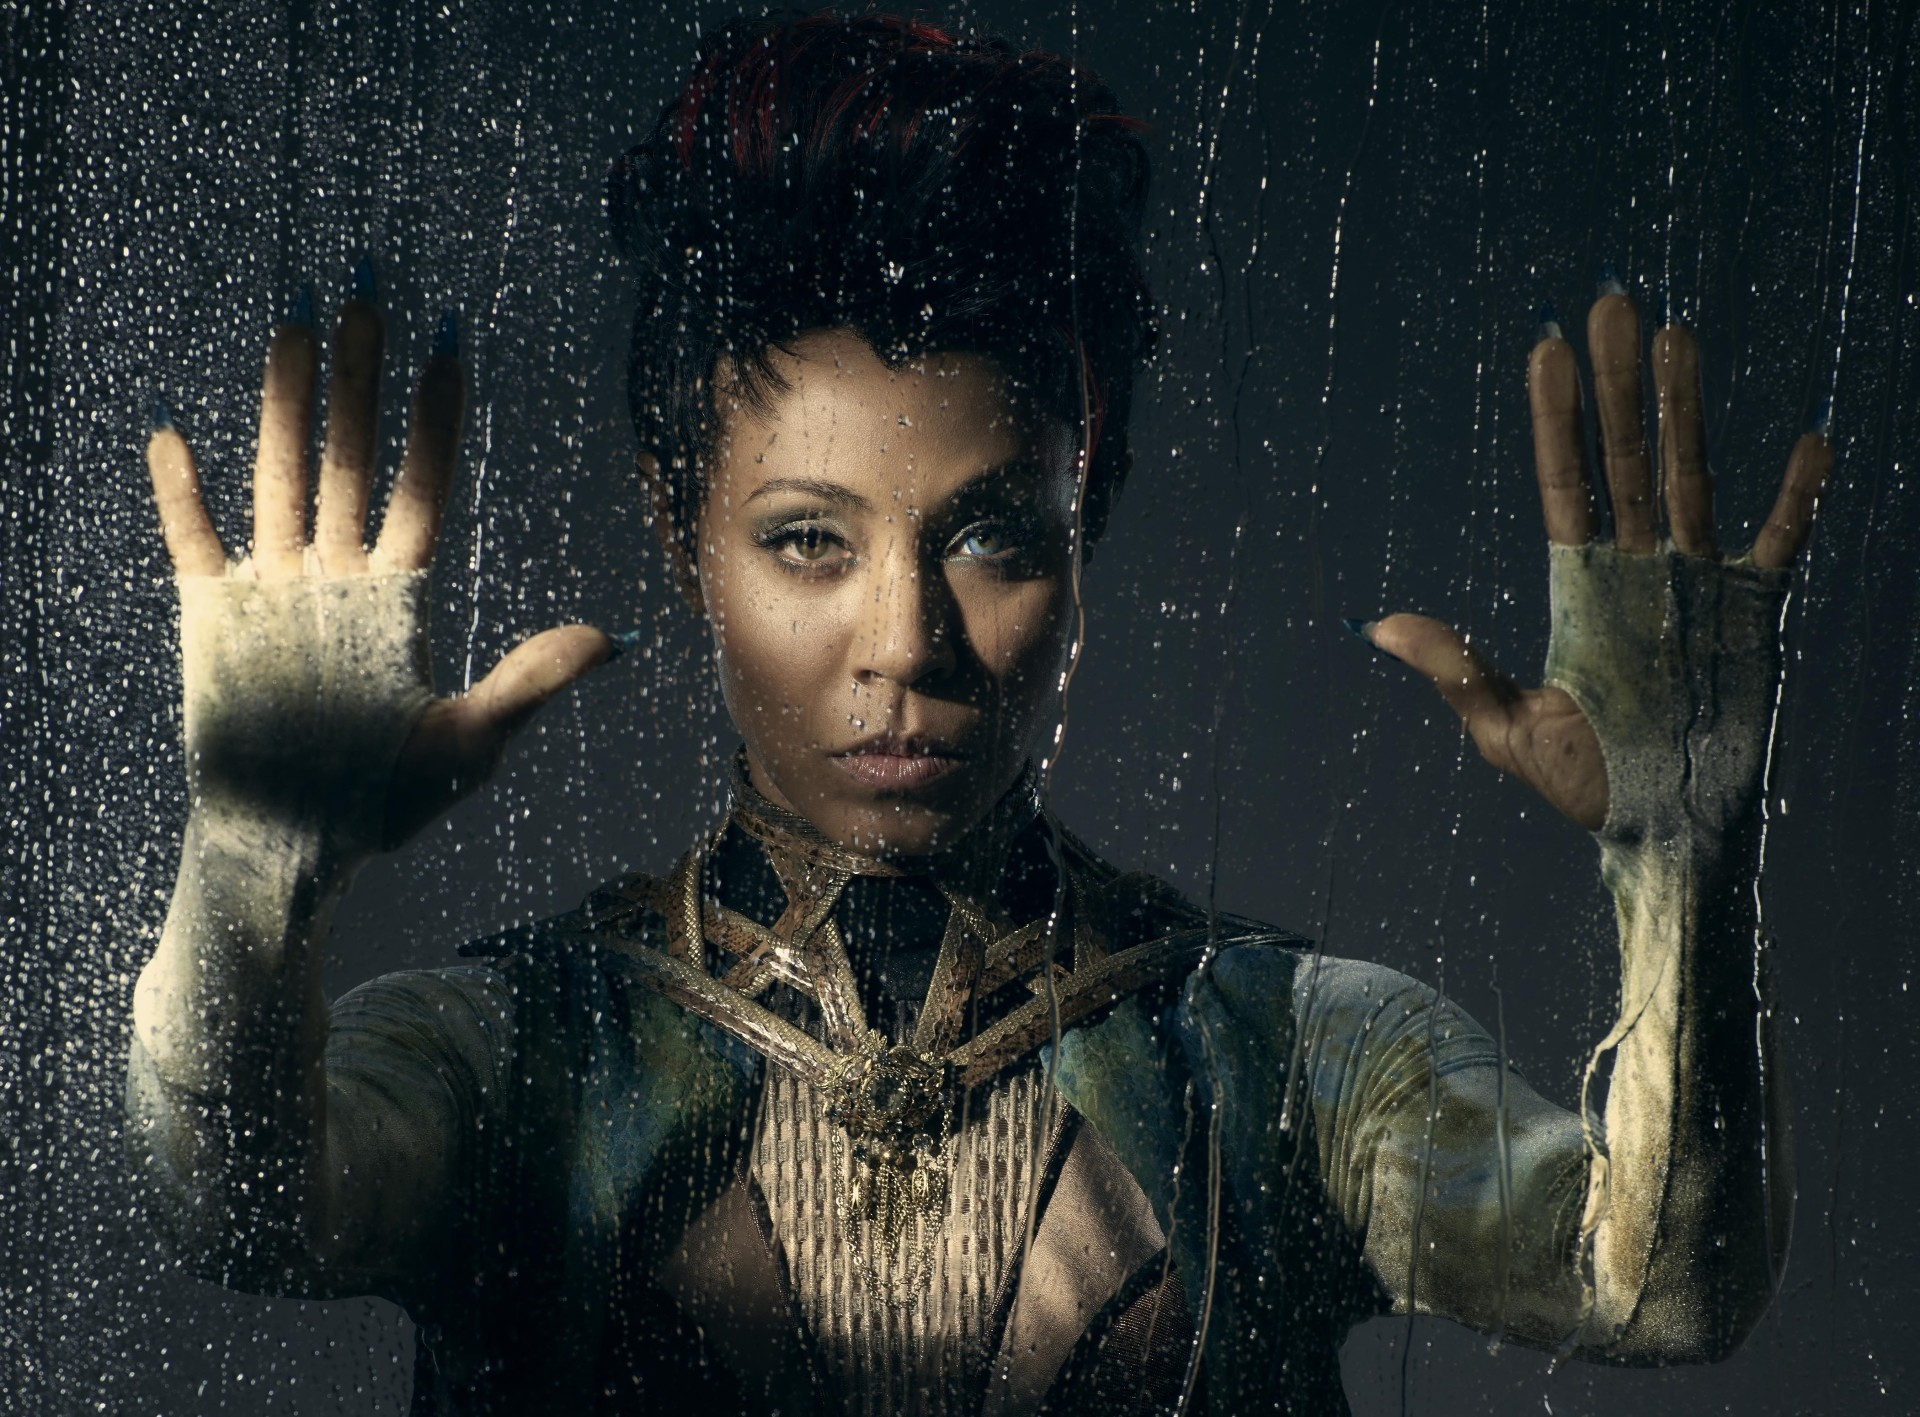 TV Show Gotham Gotham (TV Show) Fish Mooney Jada Pinkett Smith Wallpaper